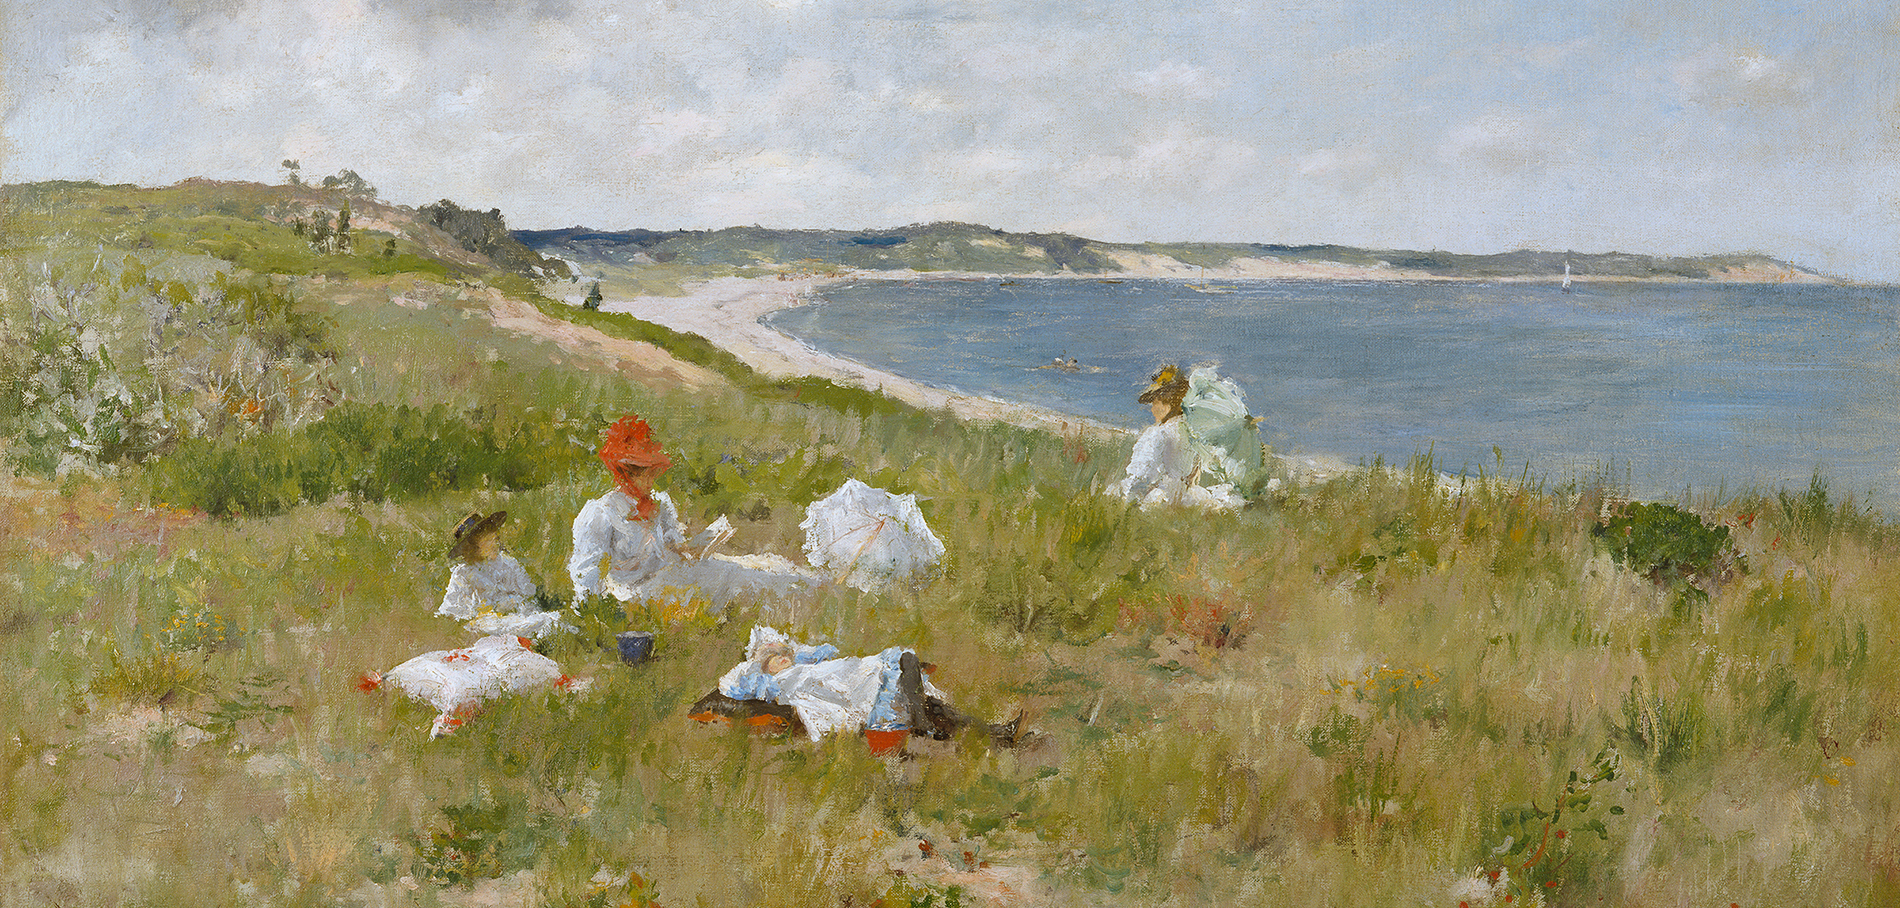 William Merritt Chase (American, 1849–1916), Idle Hours, c. 1894. Oil on canvas, 25 1/2 x 35 1/2 in. (64.8 x 90.2 cm). Amon Carter Museum of American Art, Fort Worth, Texas, 1982.1.